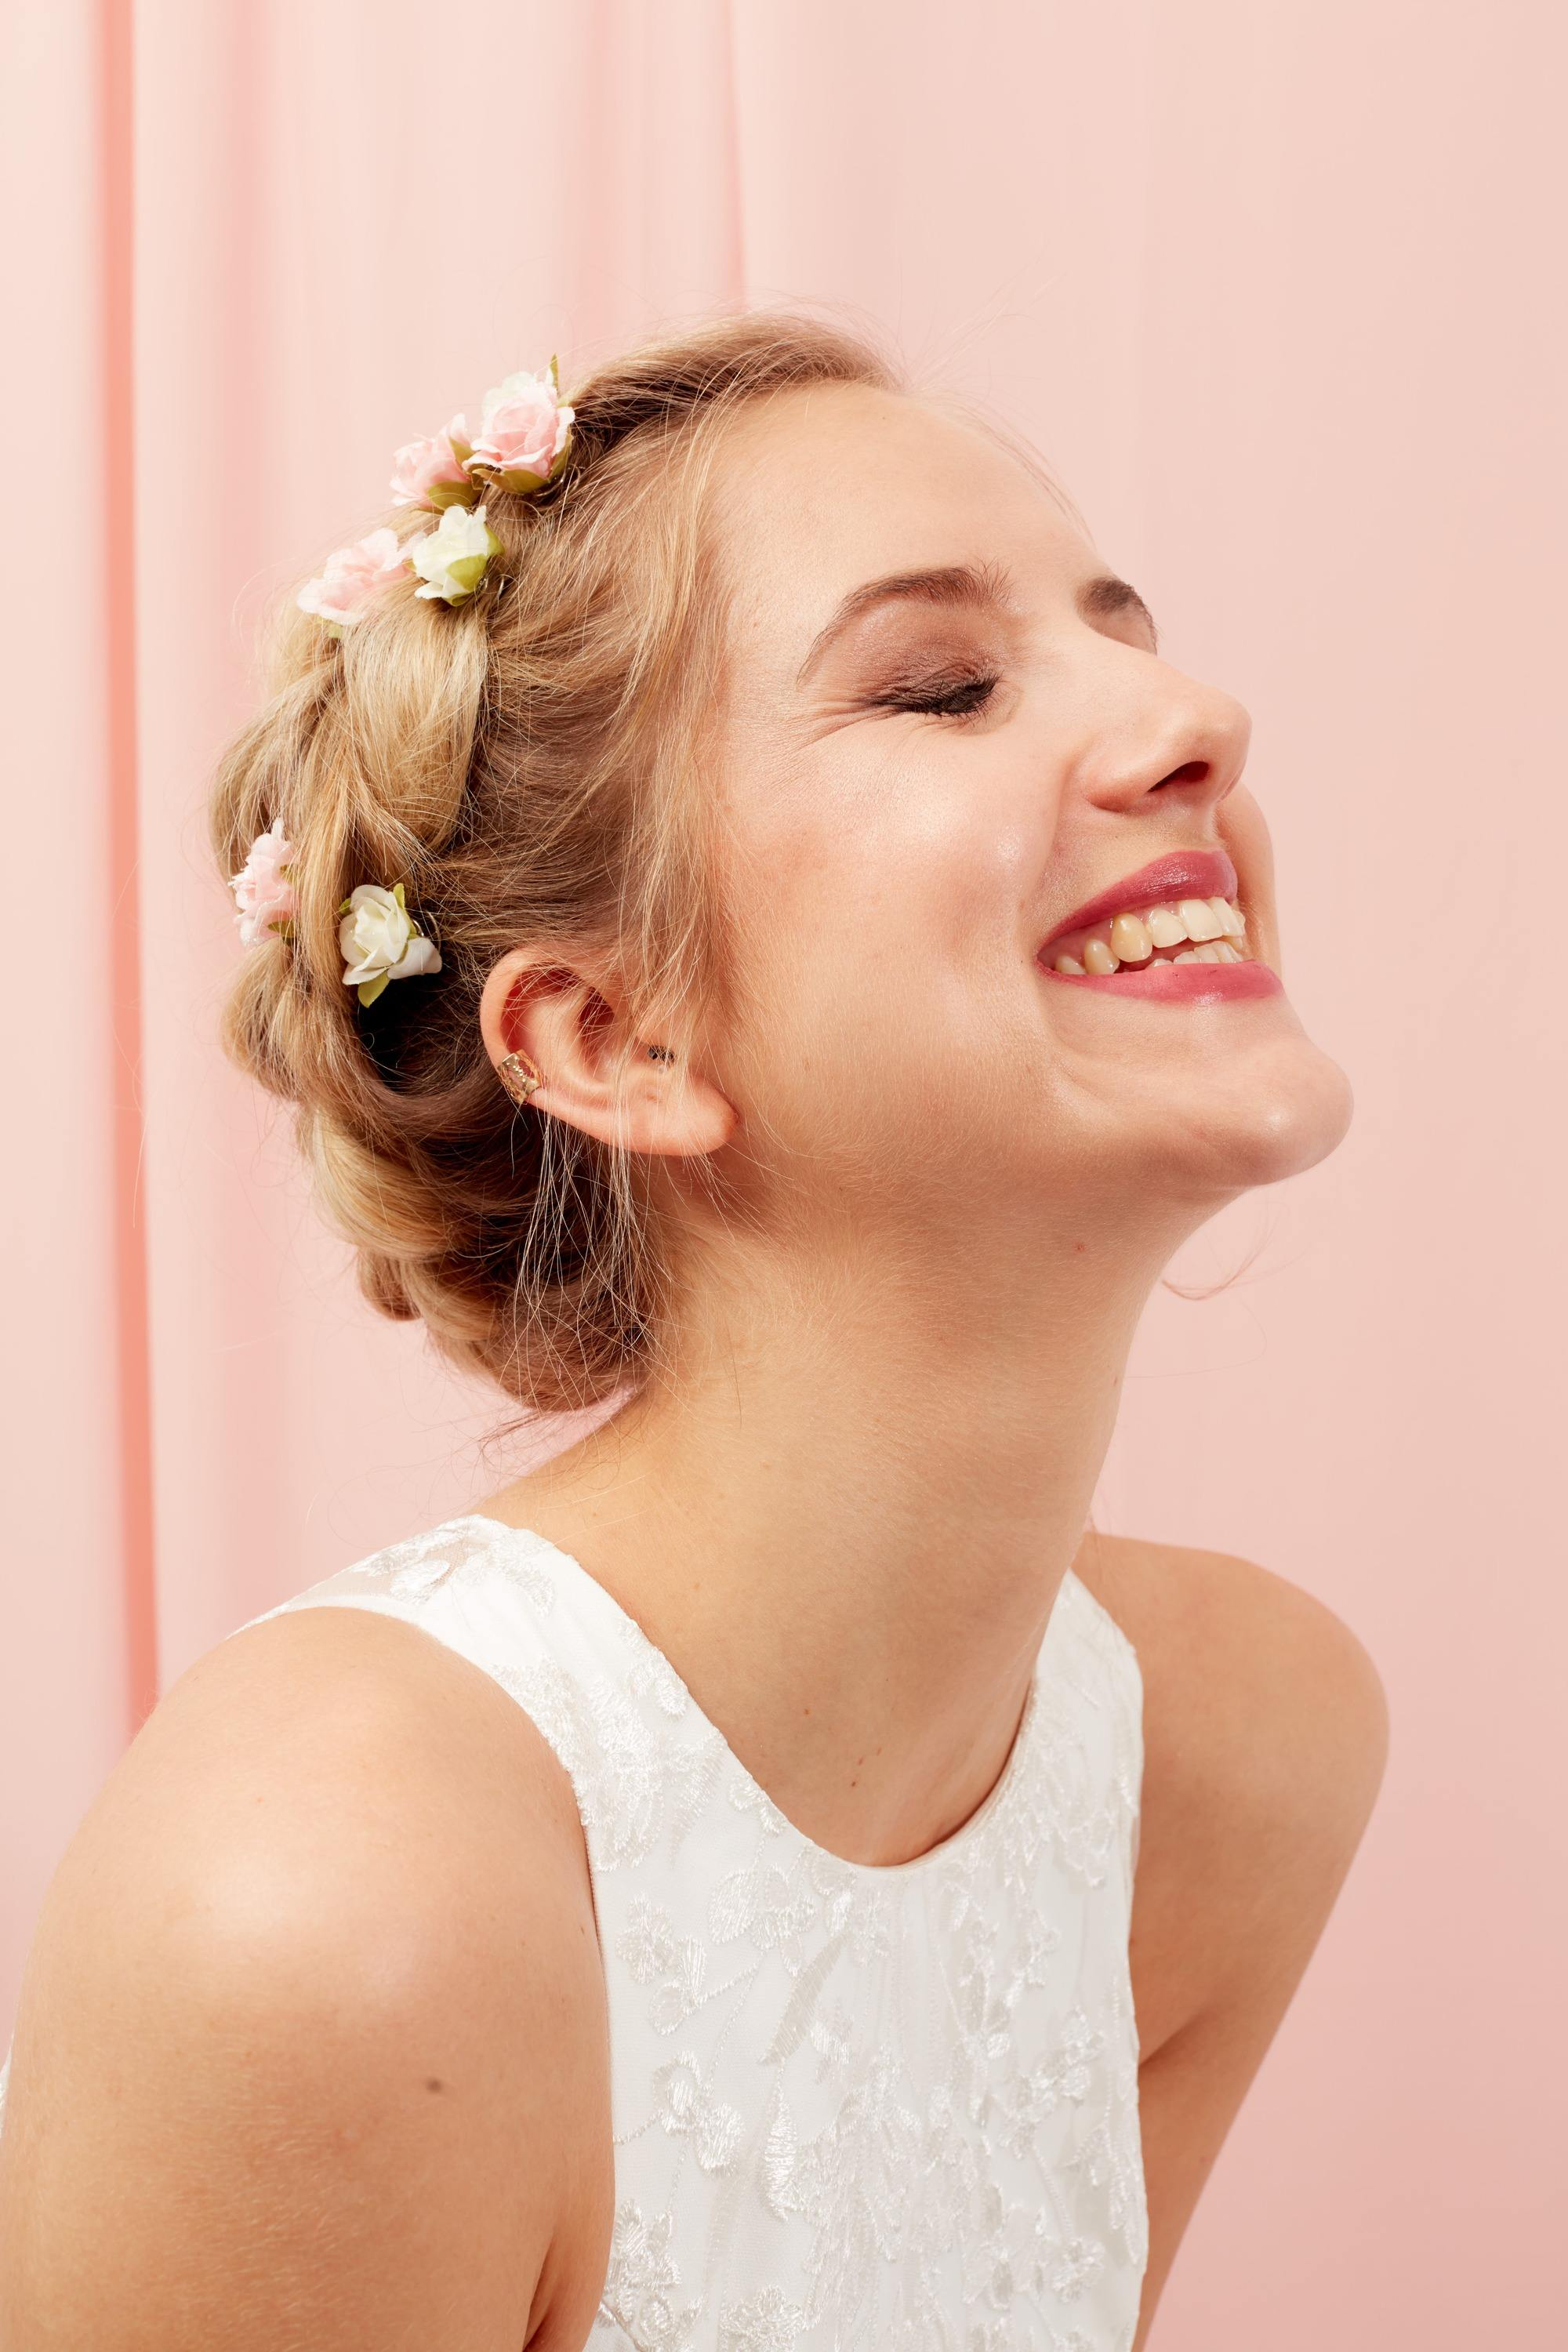 Blonde woman wit halo braid and flowers